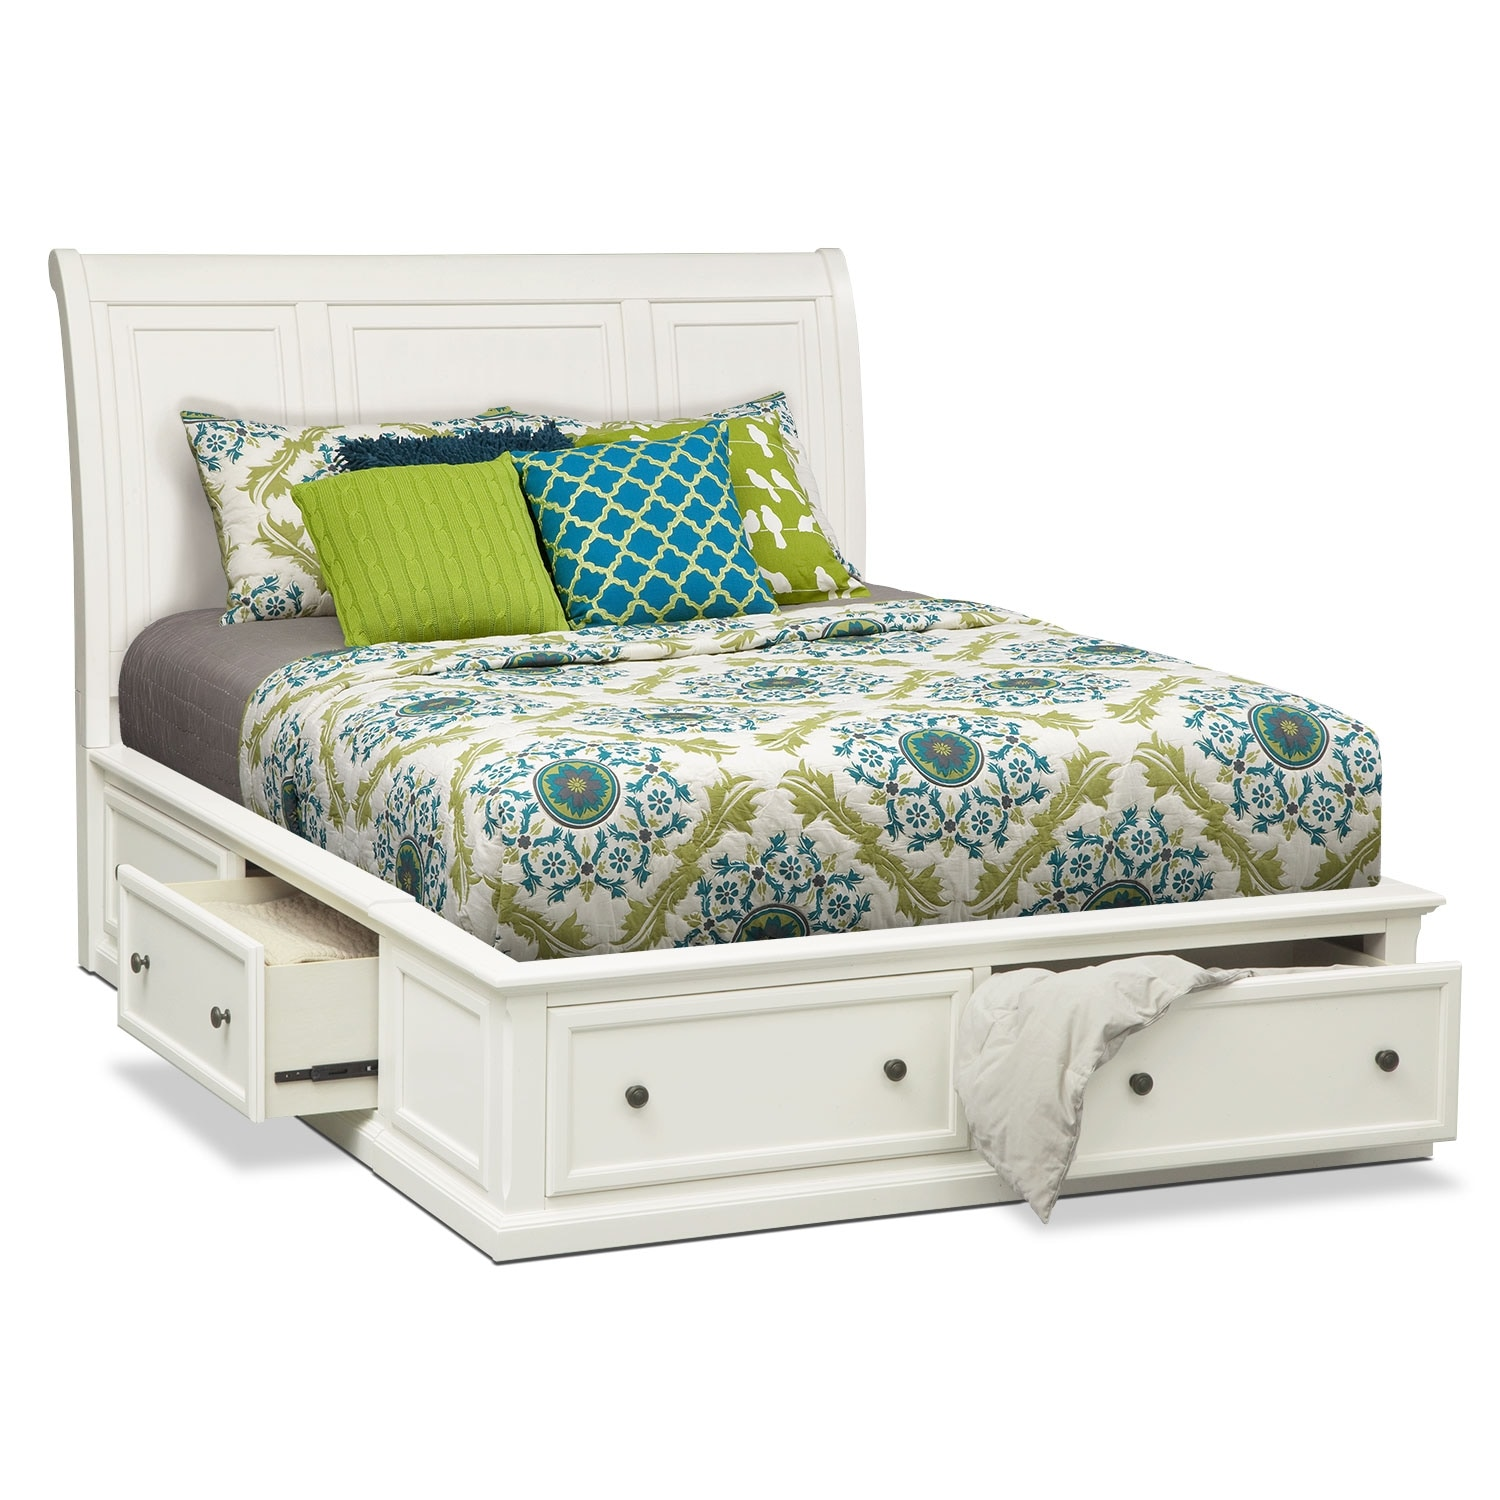 Hanover queen storage bed white american signature furniture American home furniture bed frames